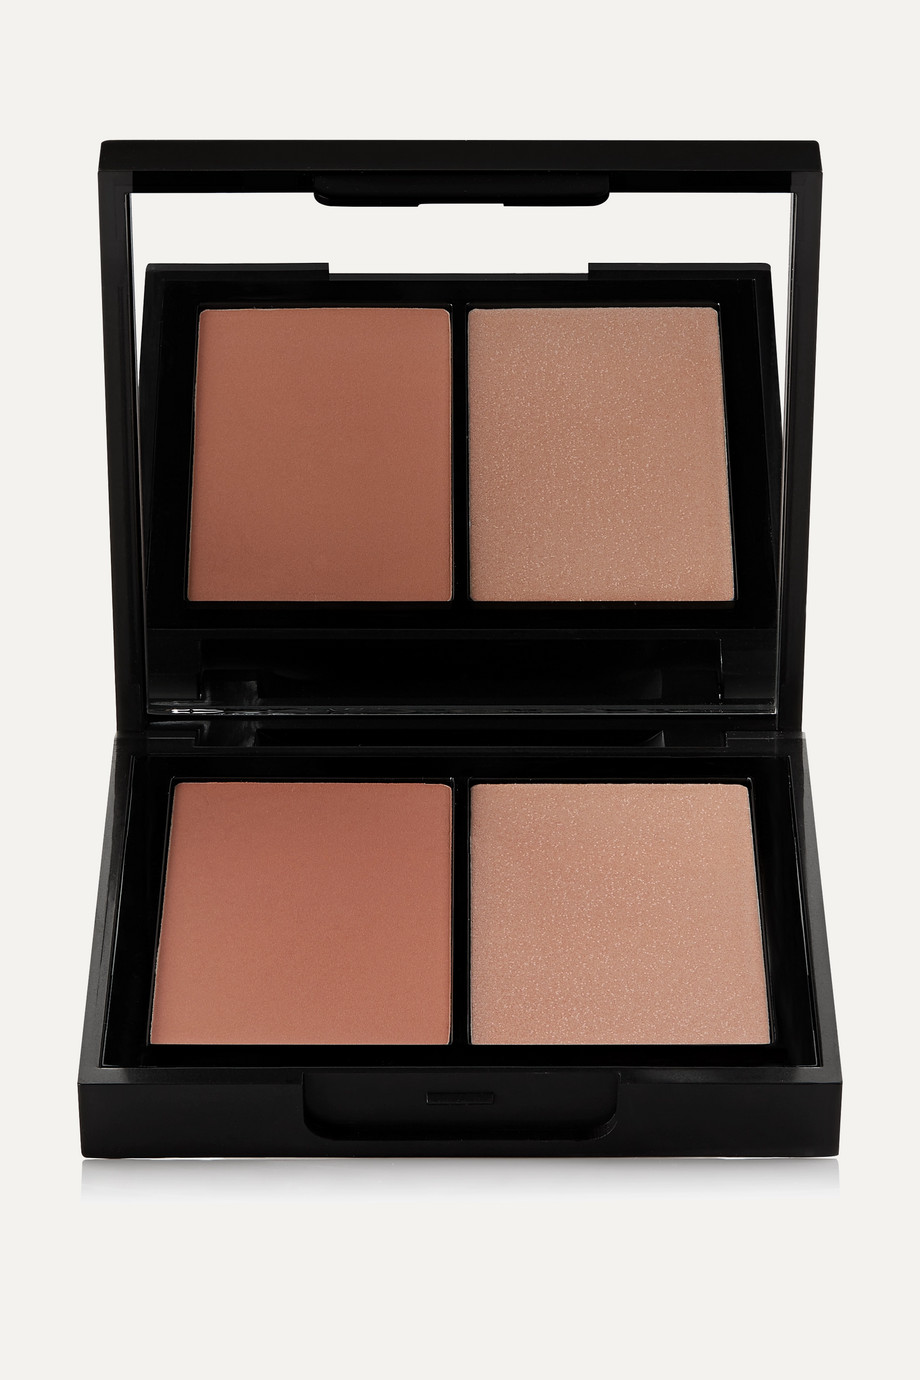 Kosas Color & Light Crème Blush - Tropic Equinox